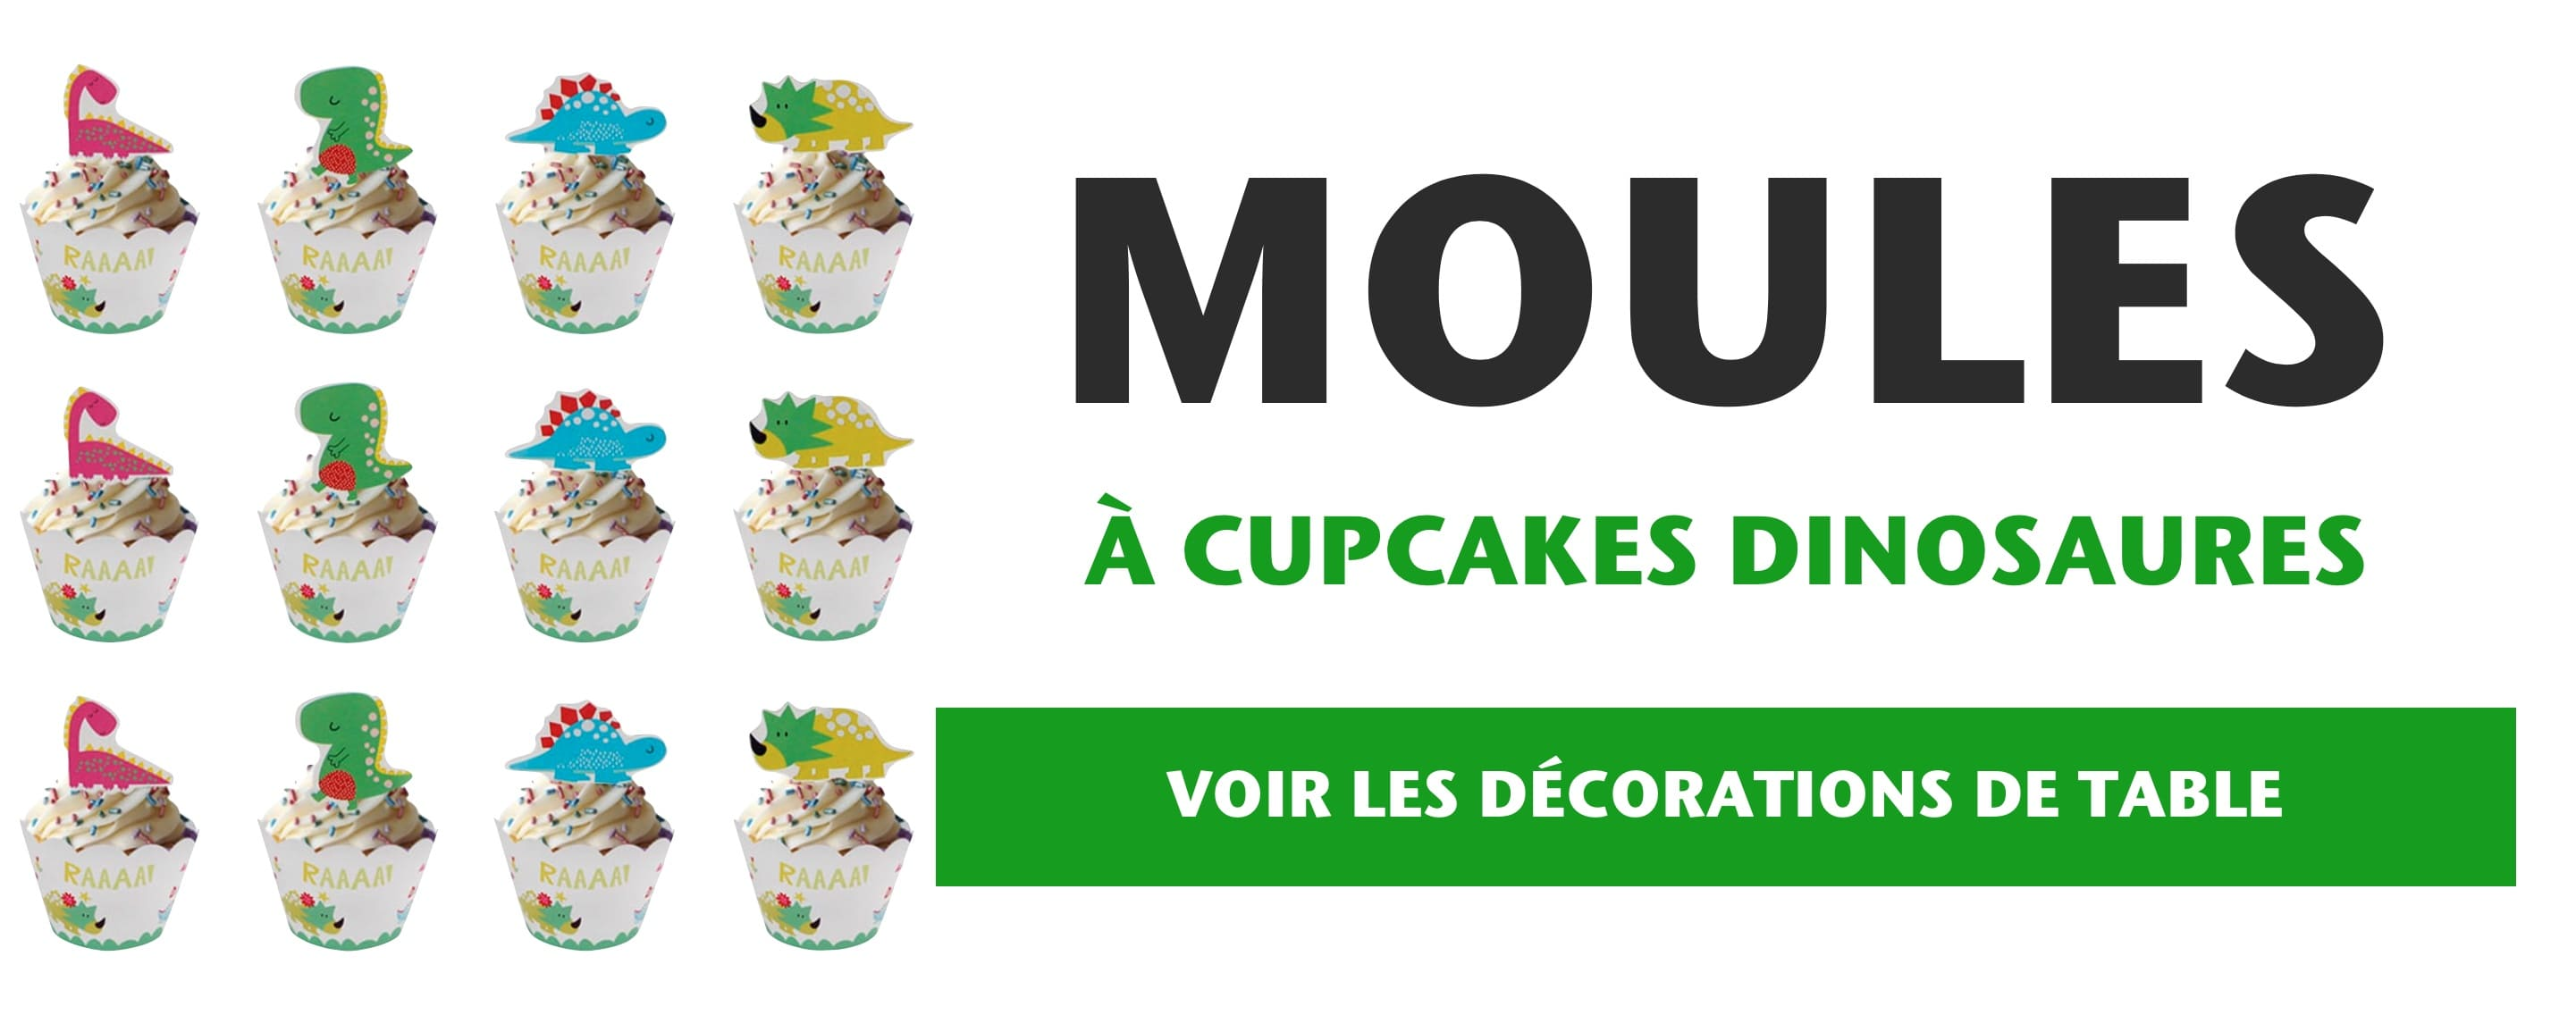 Moules a Cupcakes Dinosaures